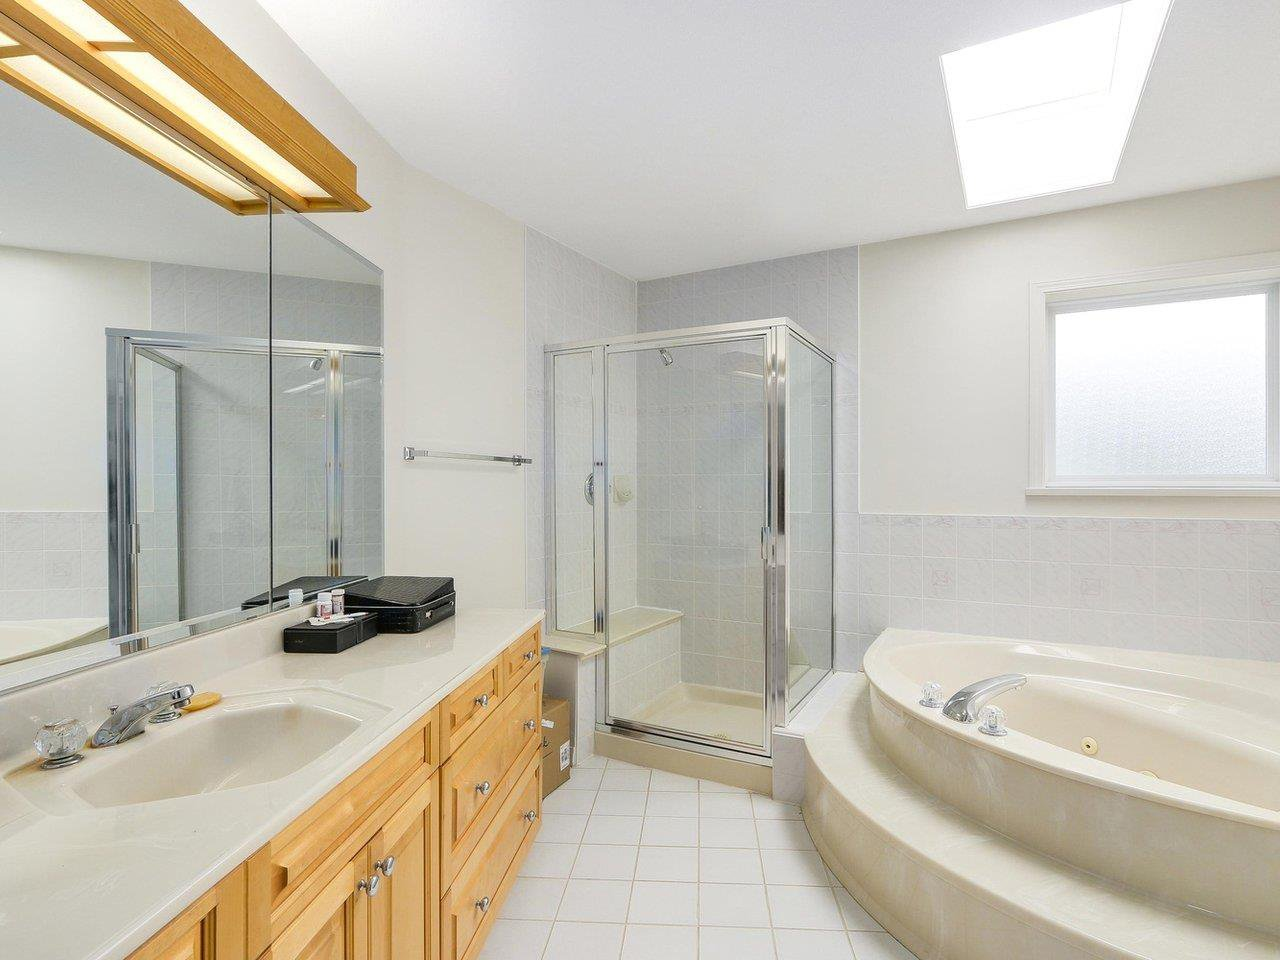 Photo 14: Photos: 1325 132B Street in Surrey: Crescent Bch Ocean Pk. House for sale (South Surrey White Rock)  : MLS®# R2185643